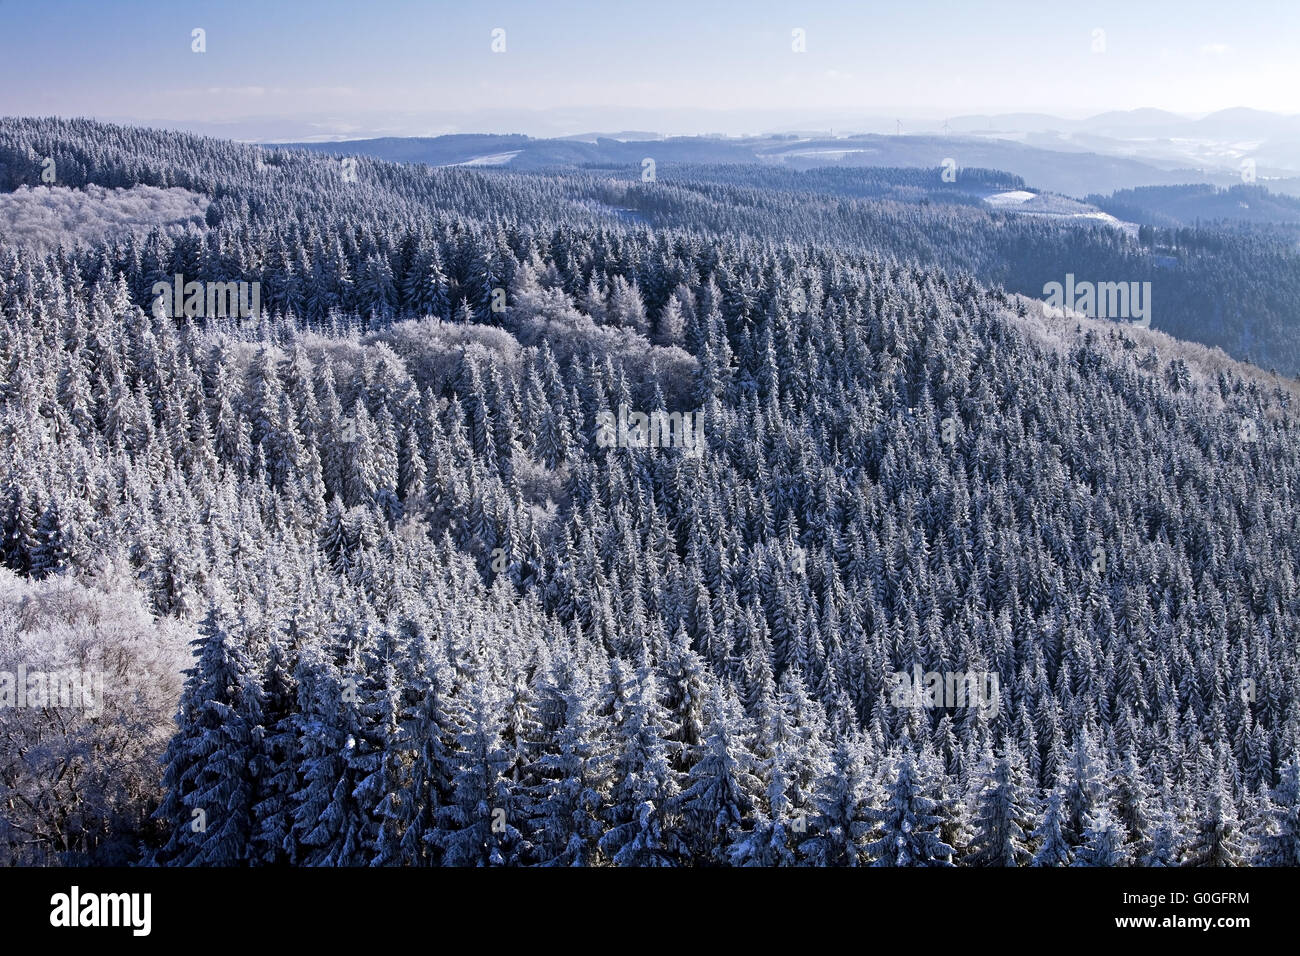 view from tower Schombergturm to snowy spruce forest near Wildewiese, Sundern, Germany - Stock Image